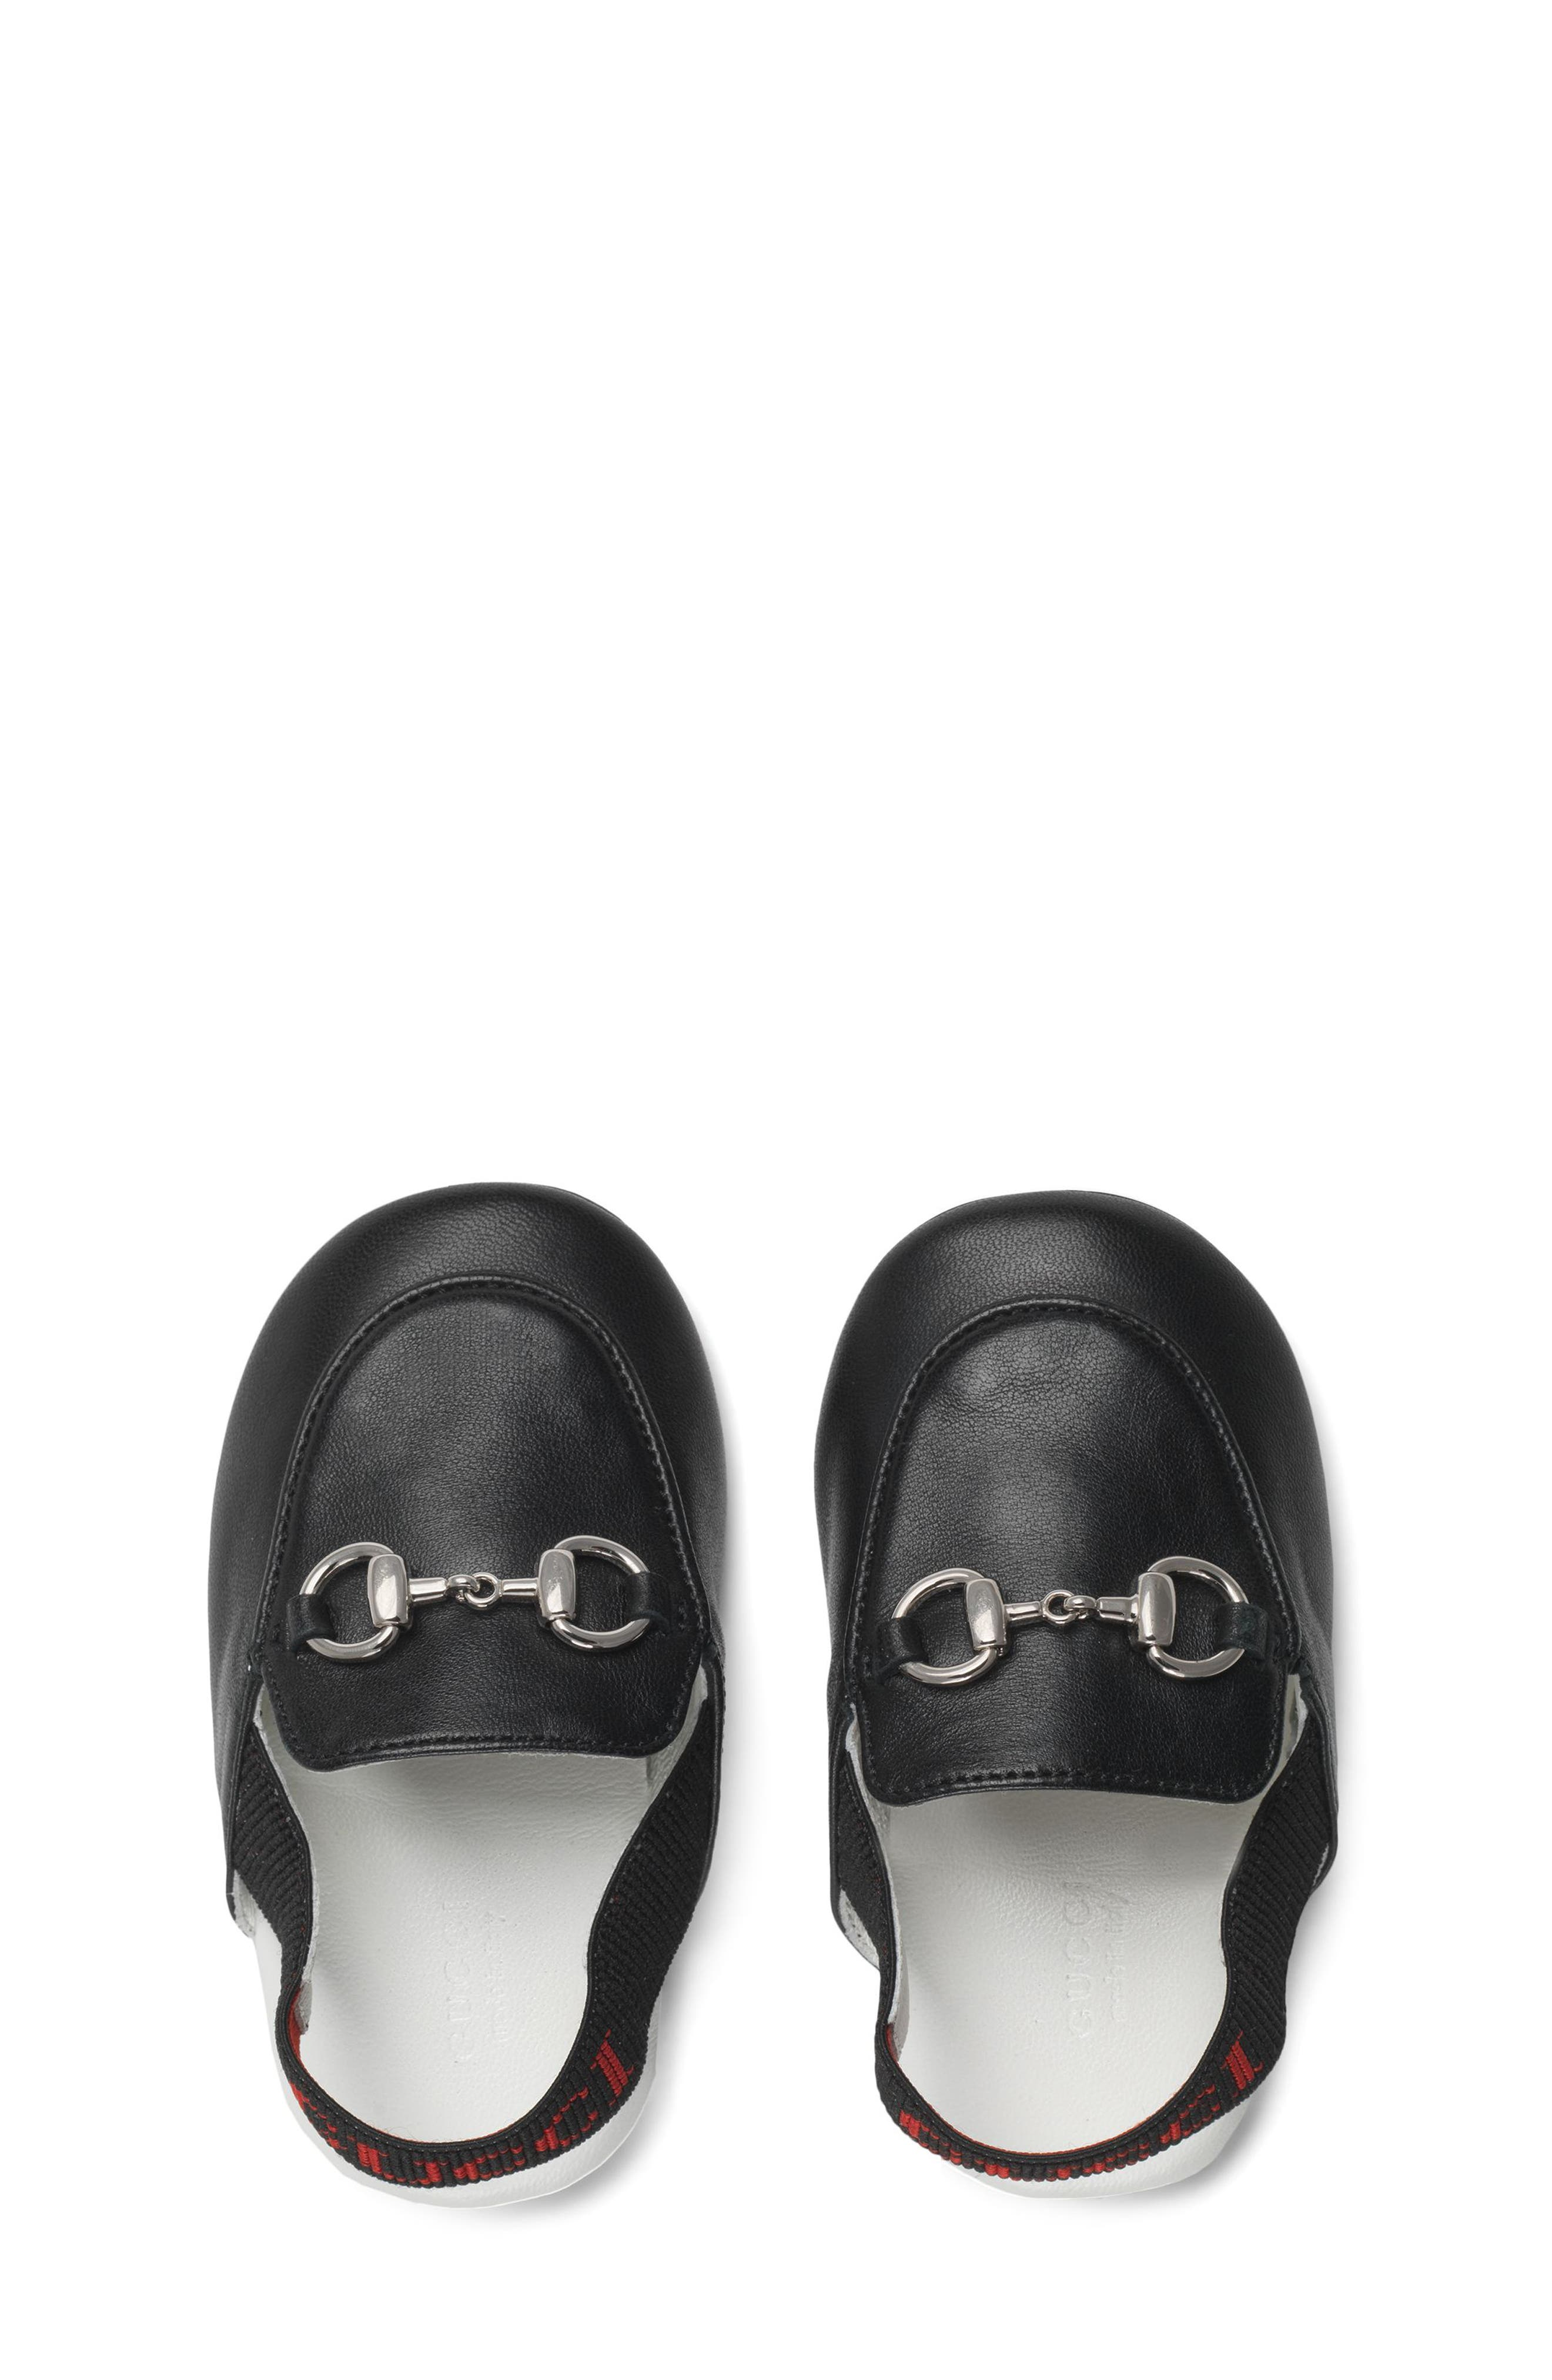 Princetown Loafer Mule,                             Alternate thumbnail 4, color,                             001